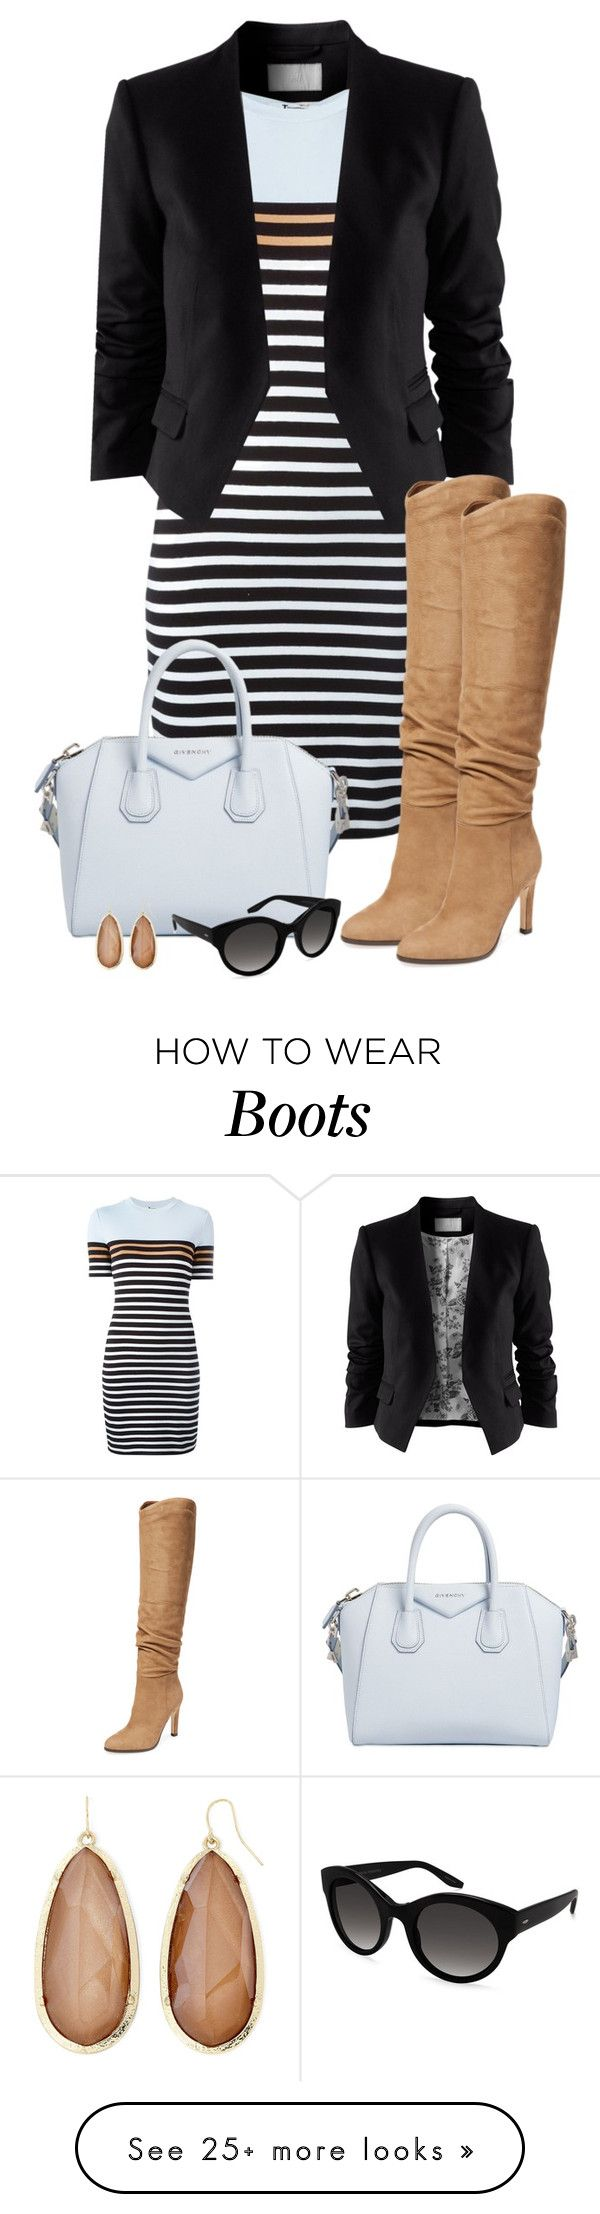 """Knee High Boots"" by kajones722 on Polyvore featuring T By Alexander Wang, H&M, Givenchy, Sigerson Morrison, Mixit, Barton Perreira, women's clothing, women, female and woman"